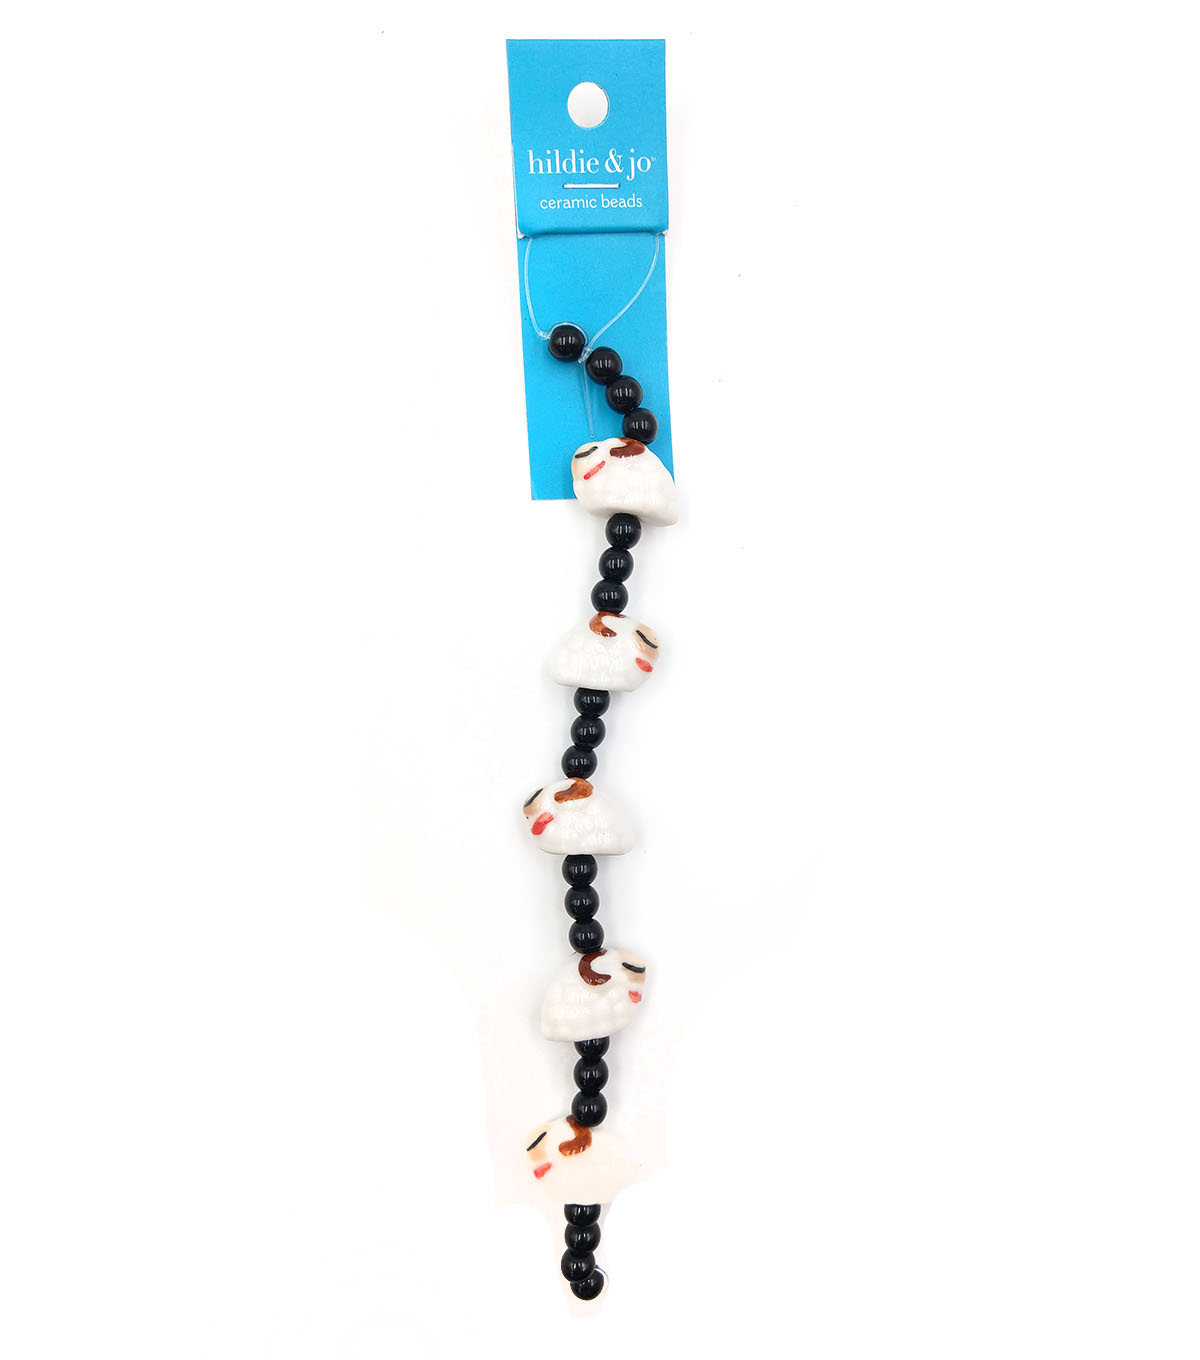 hildie & jo Ceramic Strung Beads-White Sheep & Black